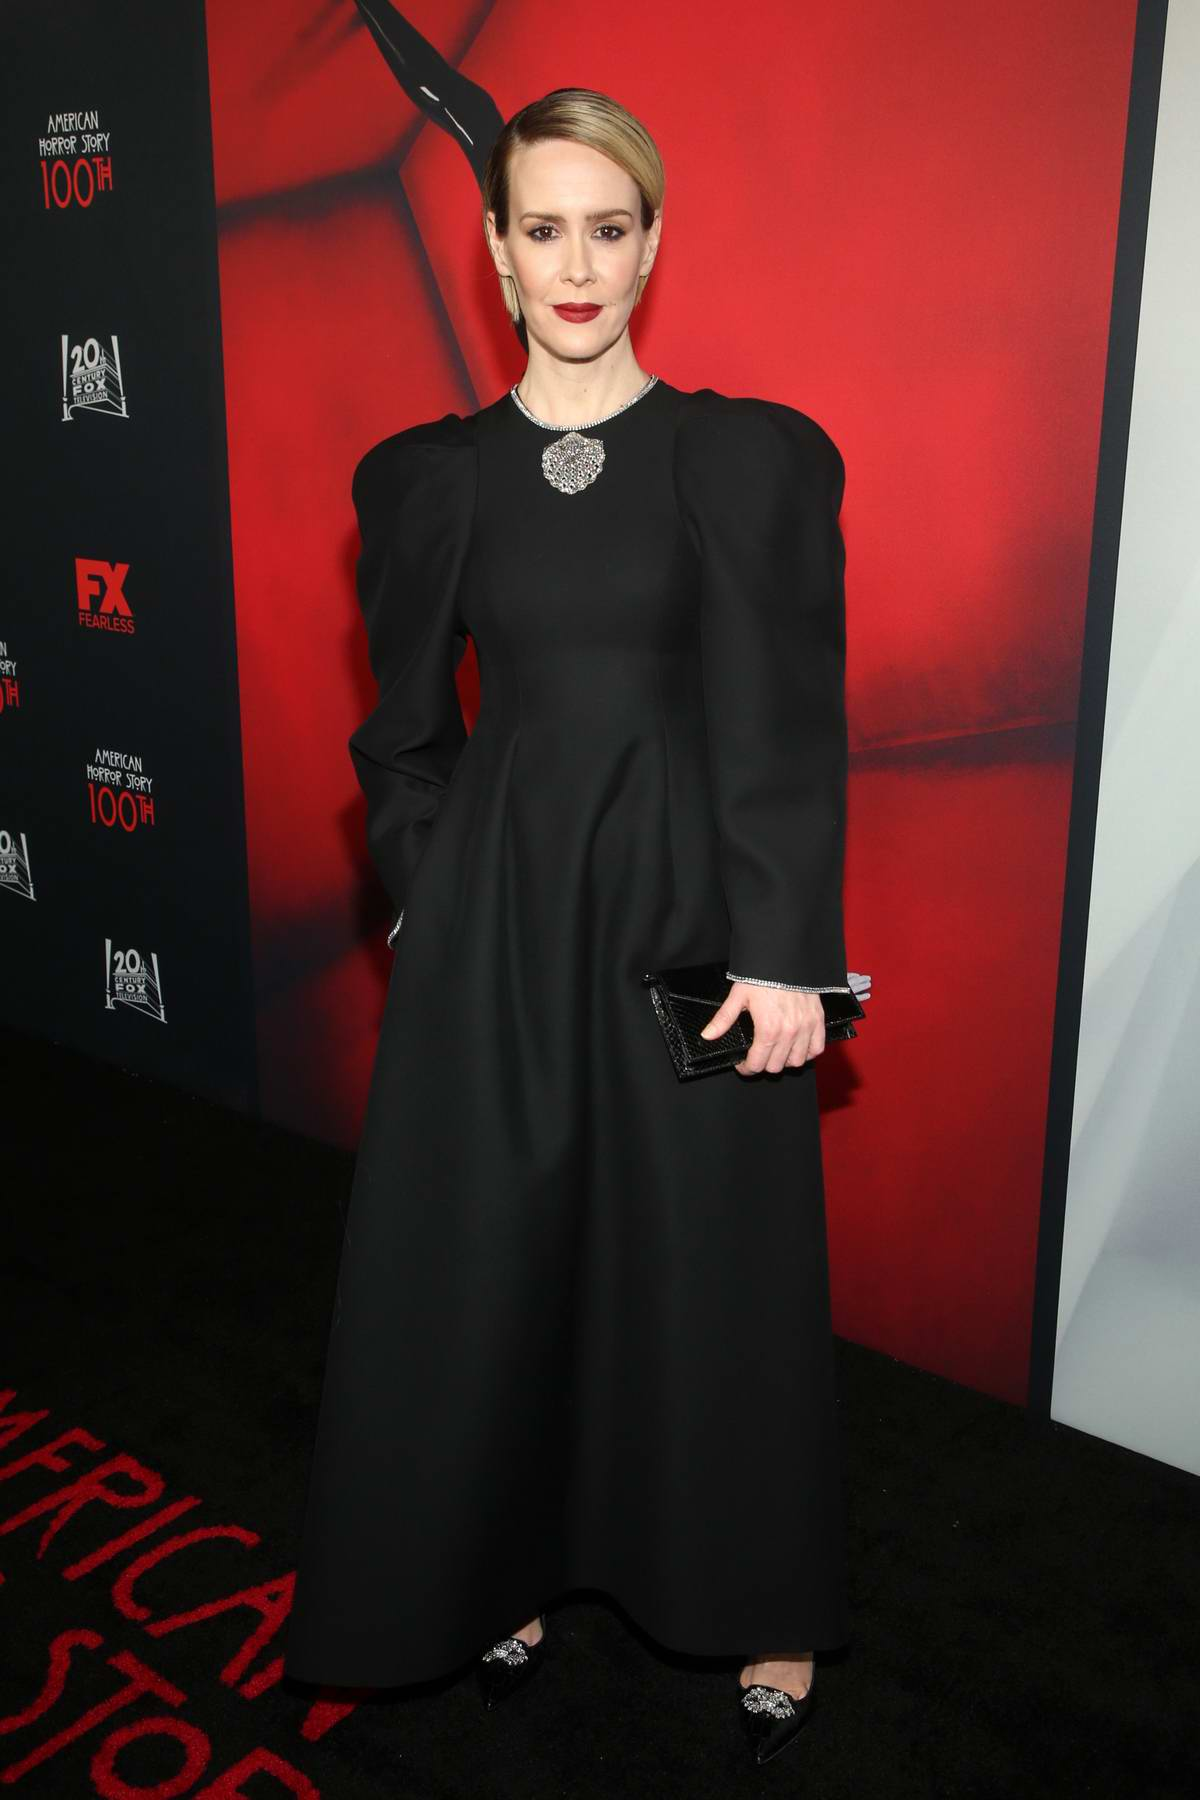 Sarah Paulson attends FX's 'American Horror Story' 100th Episode Celebration at Hollywood Forever in Los Angeles